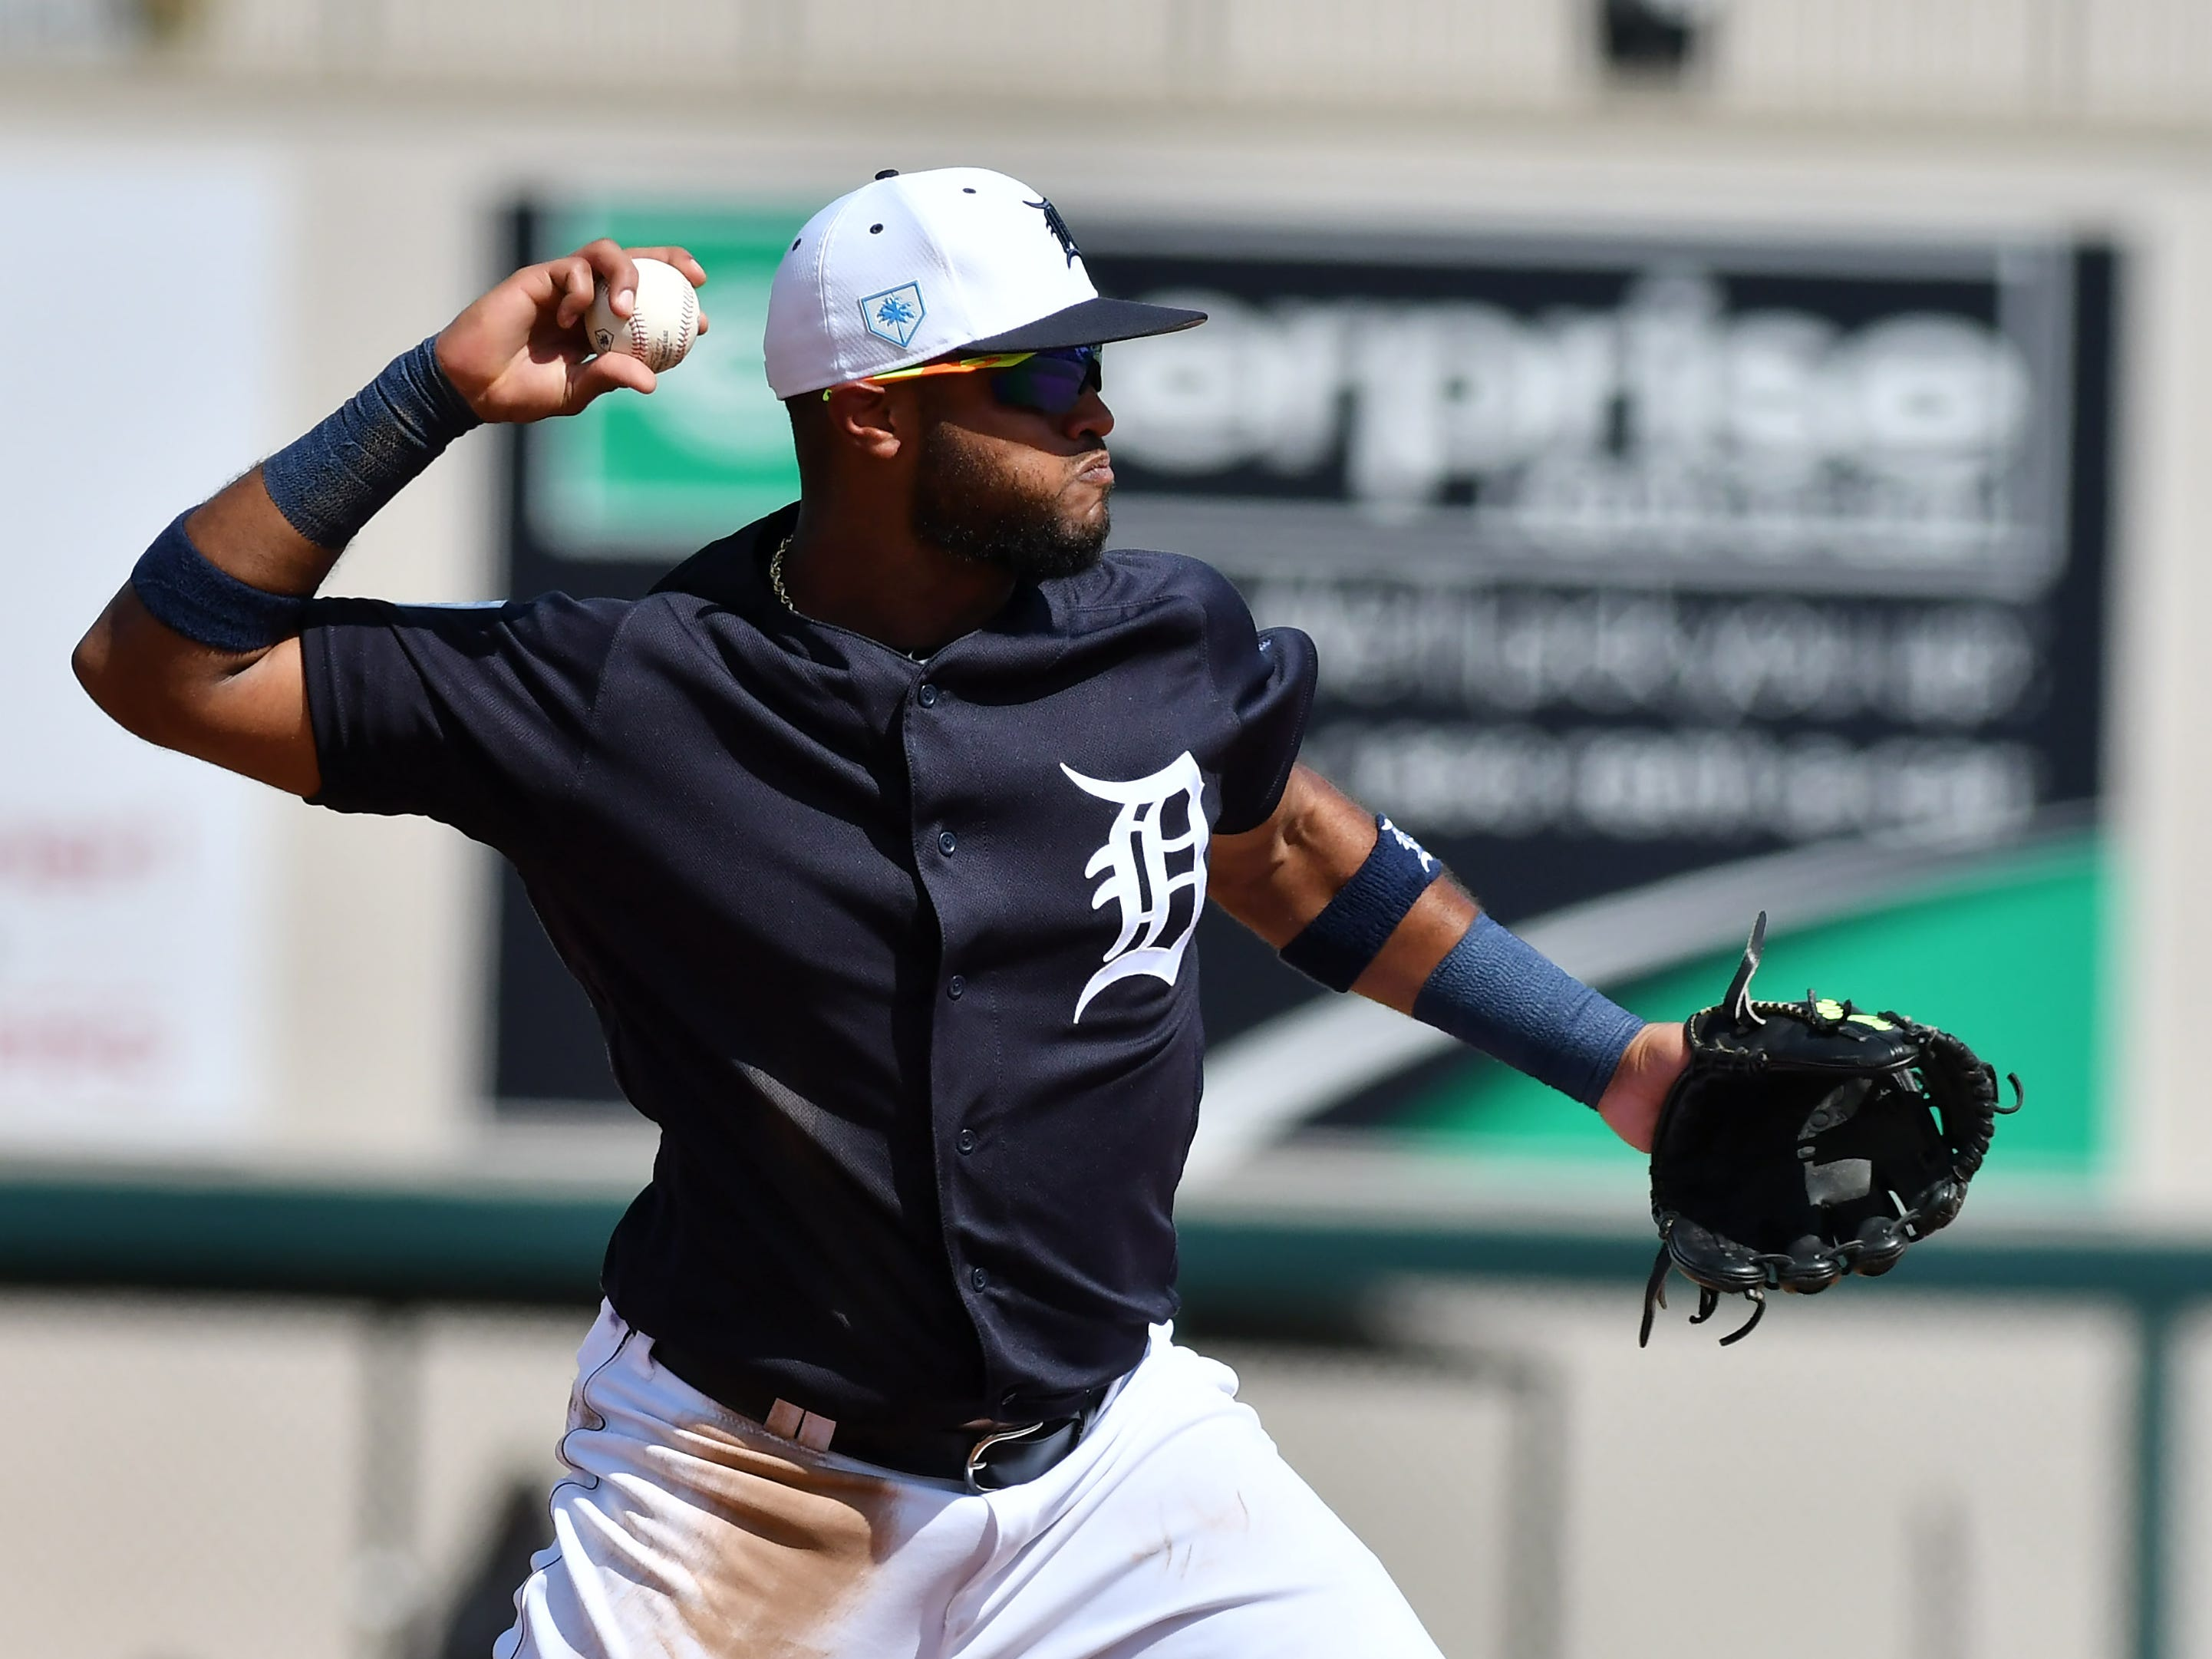 Tigers shortstop Willi Castro makes a throw to first in the third inning.